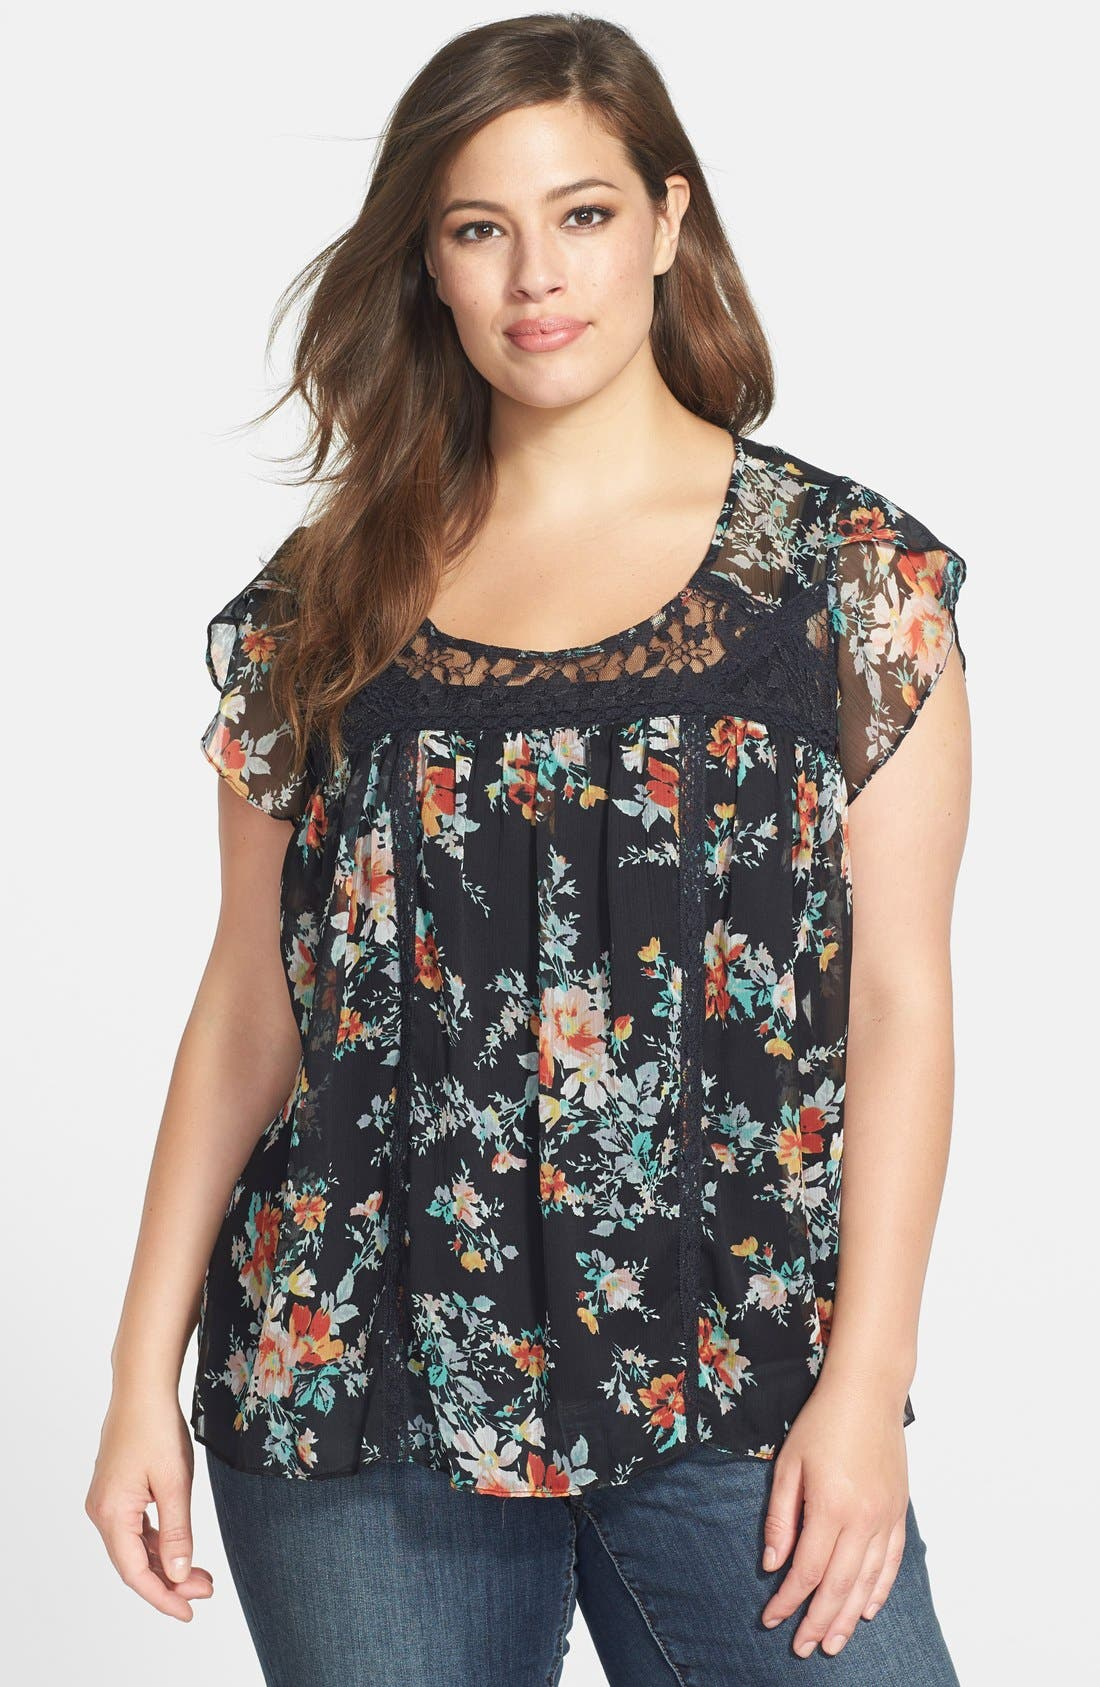 Shop for fashionable plus size tops at programadereconstrucaocapilar.ml! We have plus size tunics, sweaters, and tank tops in sizes XL, 2XL & more. Our selection includes peplum and lace tops!